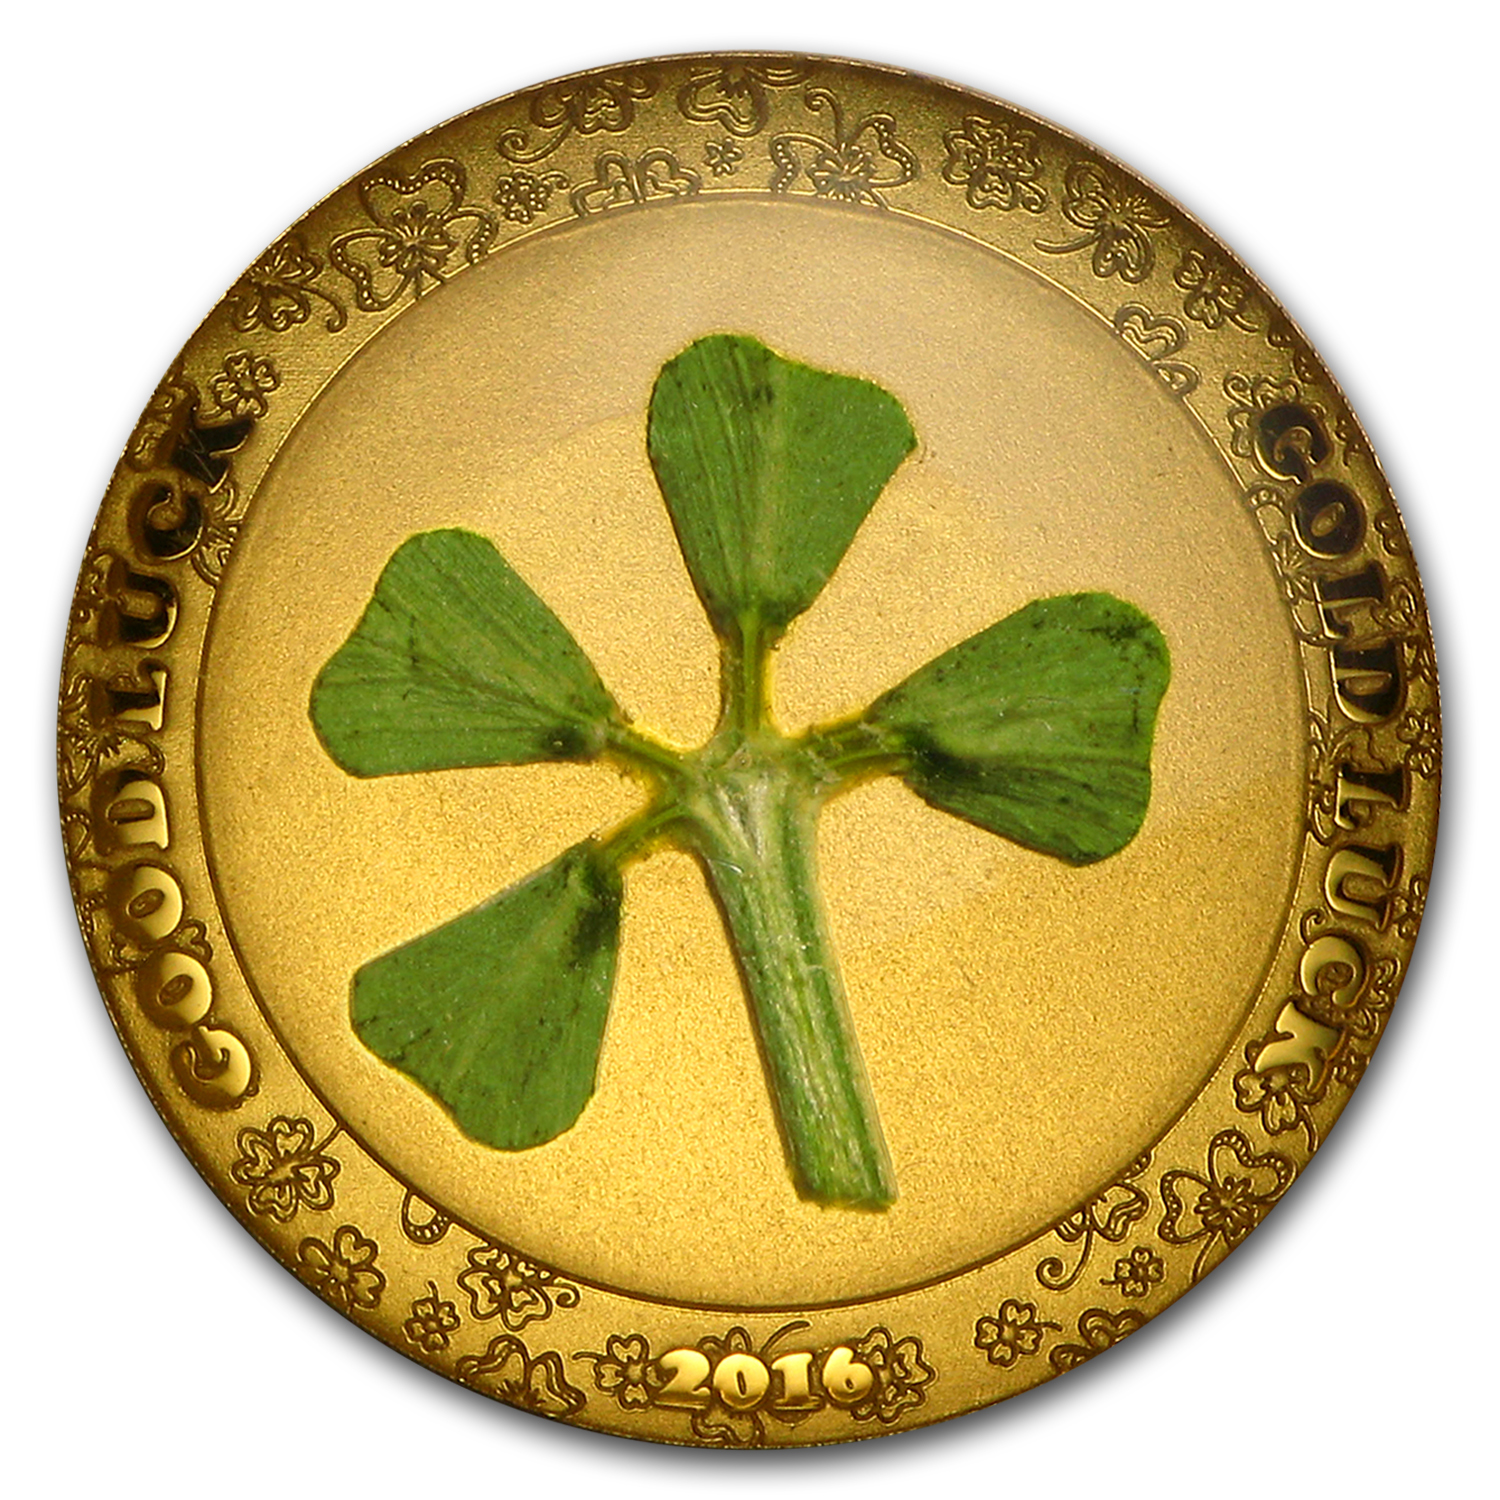 2016 Palau 1 gram Gold $1 Four-Leaf Clover